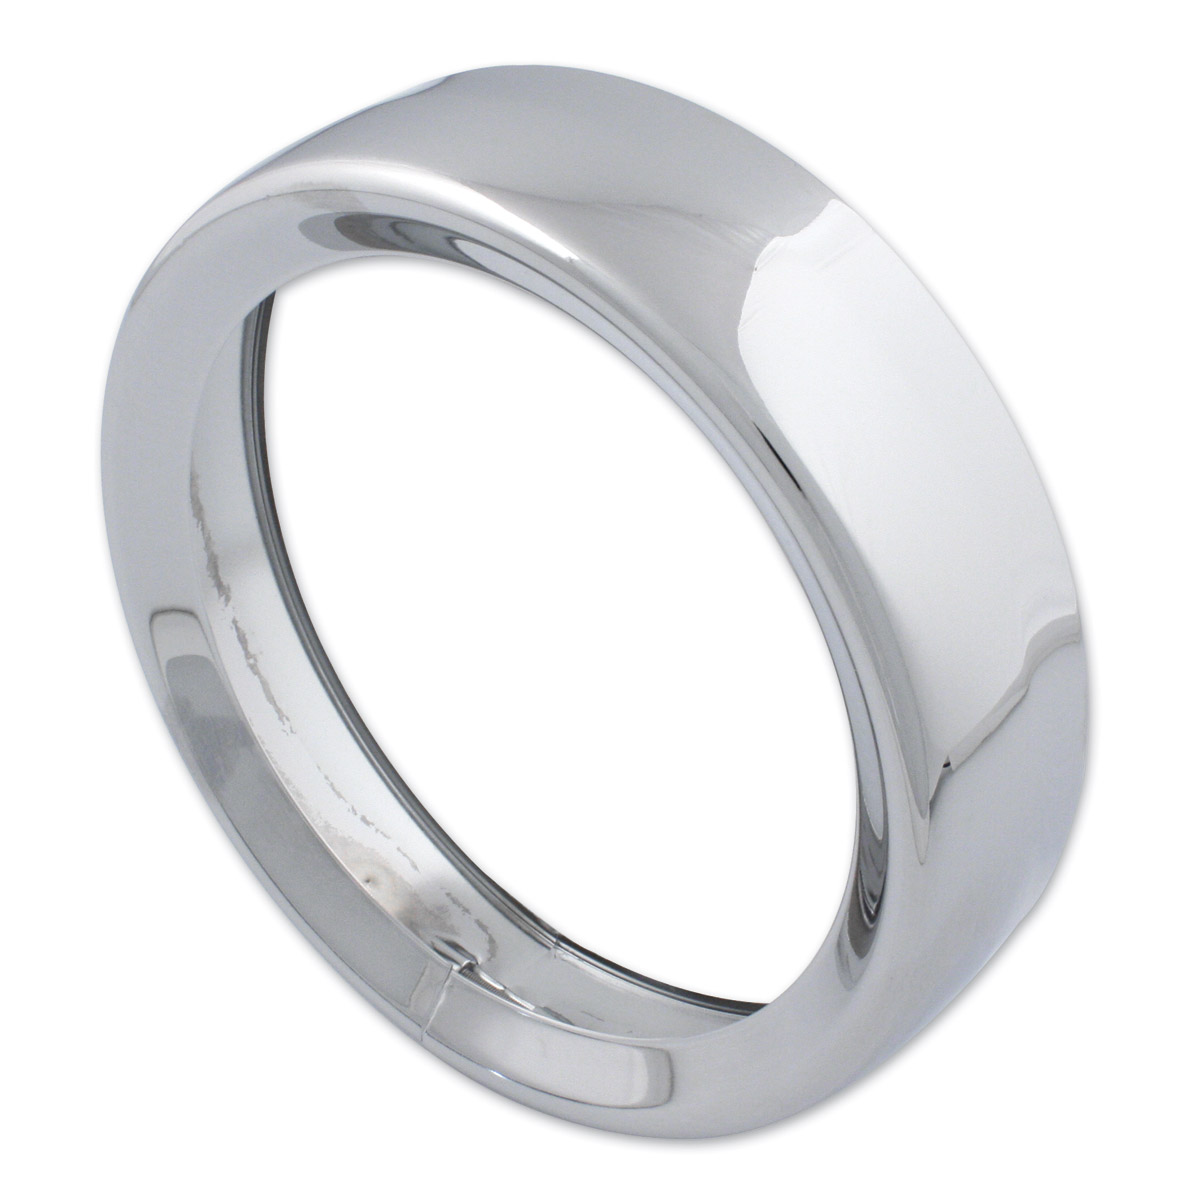 frenched headlight trim ring 3100356 j p cycles